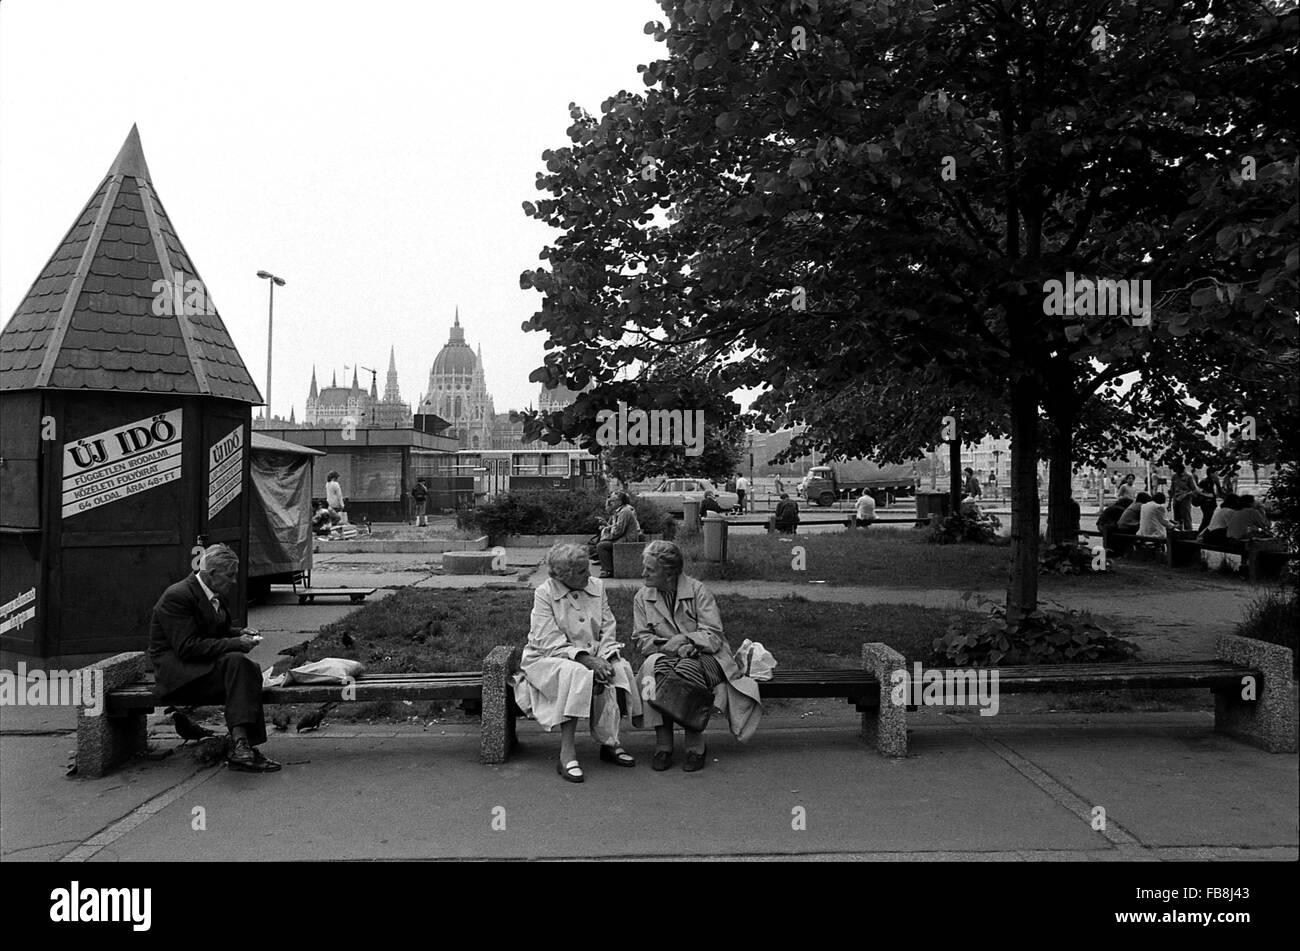 Glance on Bupapest at the time of the Nineties. -  1990  -  Hungary / Budapest  -  Glance on Bupapest at the time Stock Photo